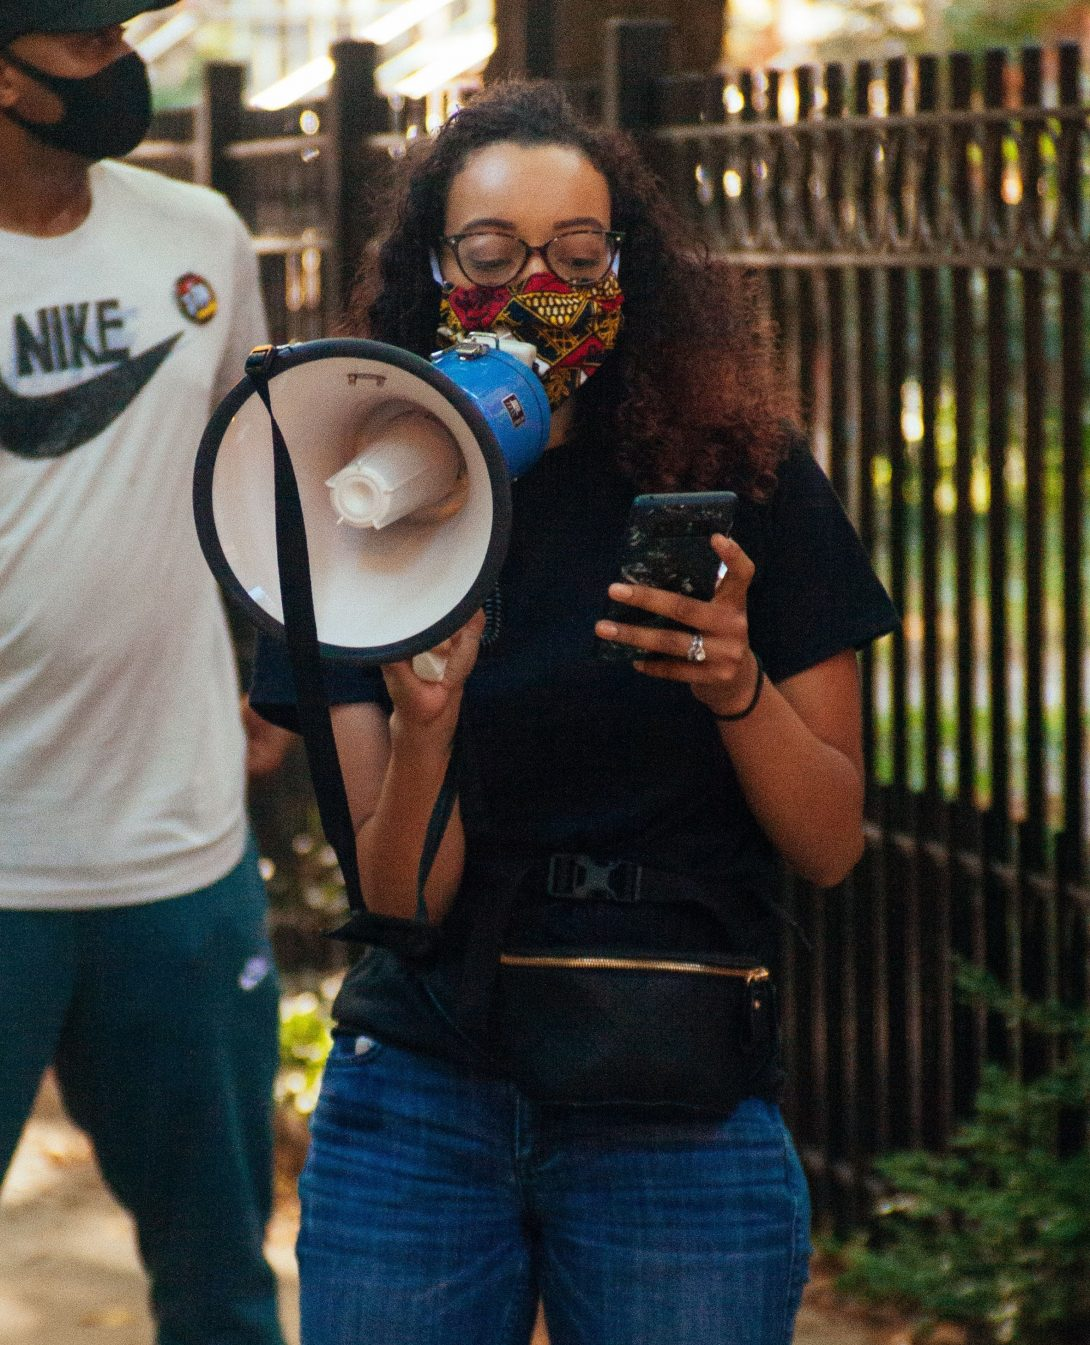 Alexis, wearing a face mask, standing outdoors near a fence, reading off a phone, and speaking through a megaphone.